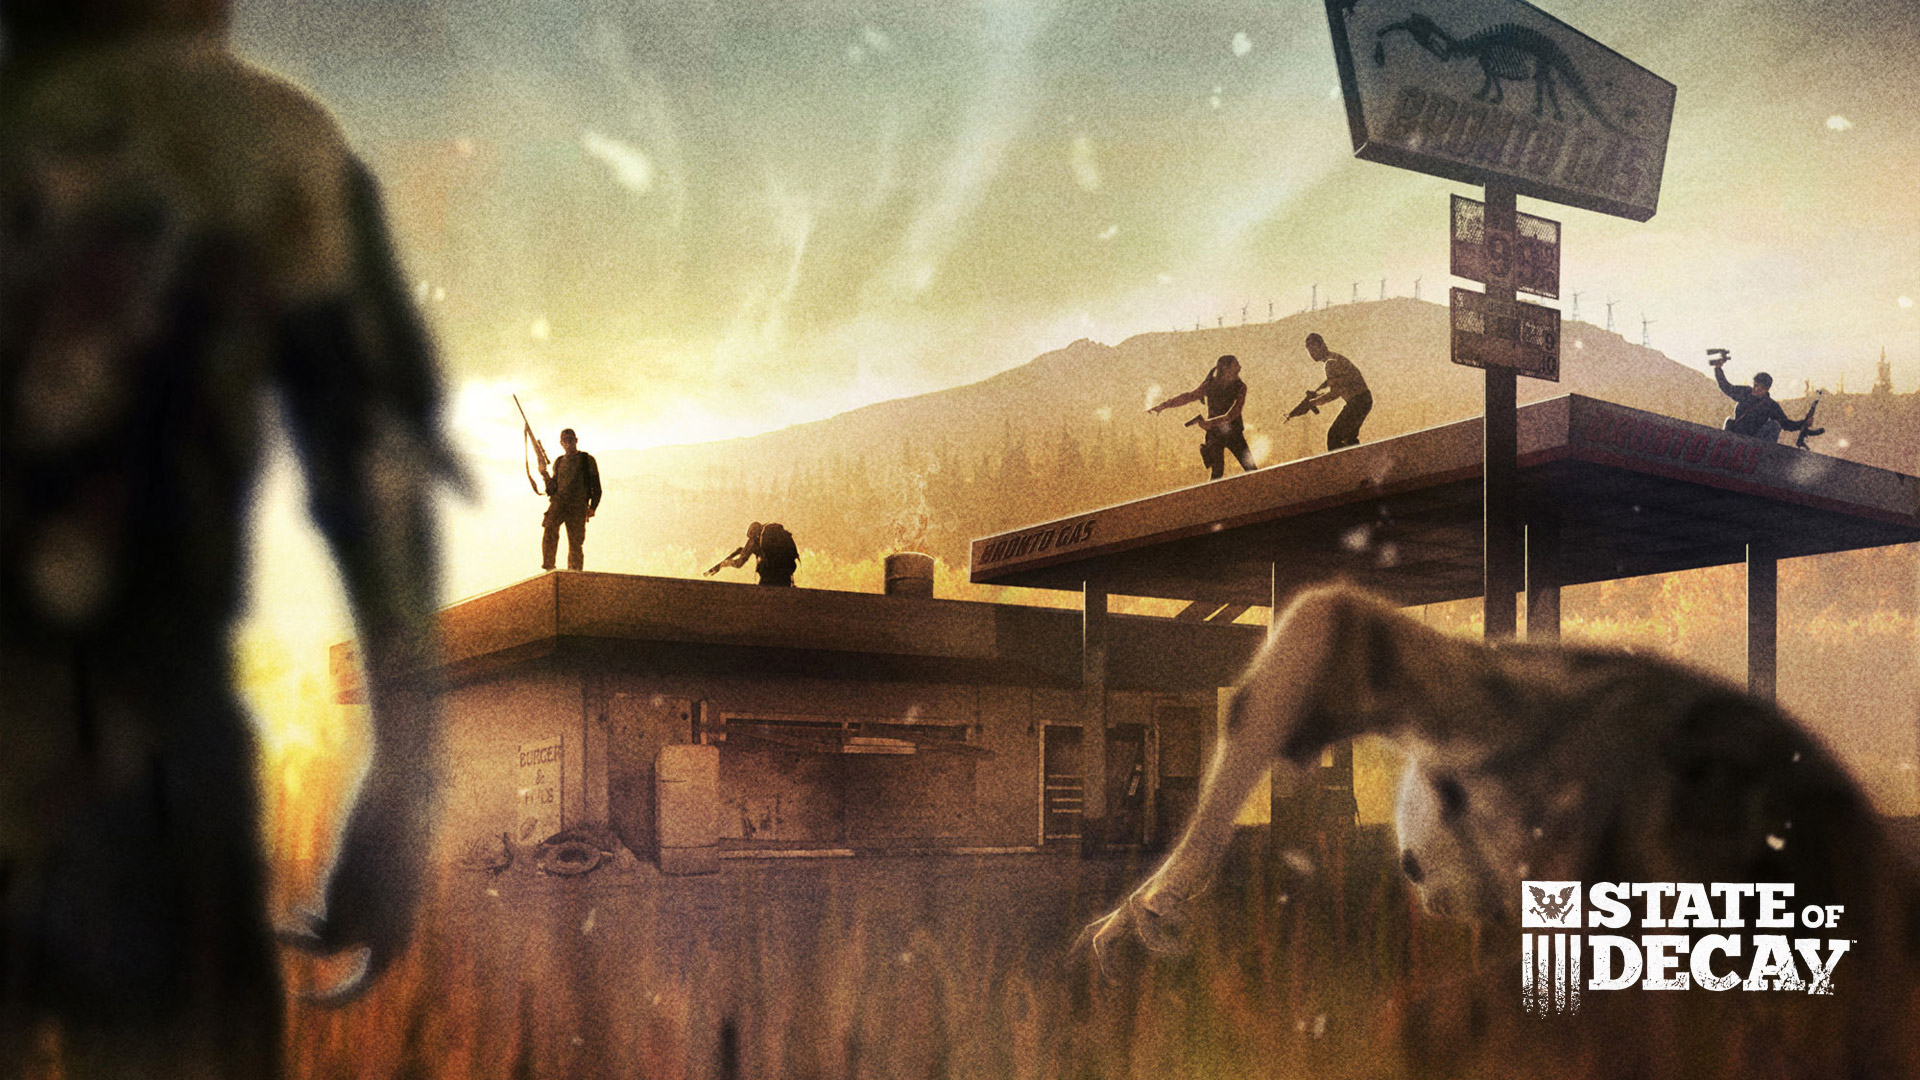 State Of Decay Wallpapers in Ultra HD